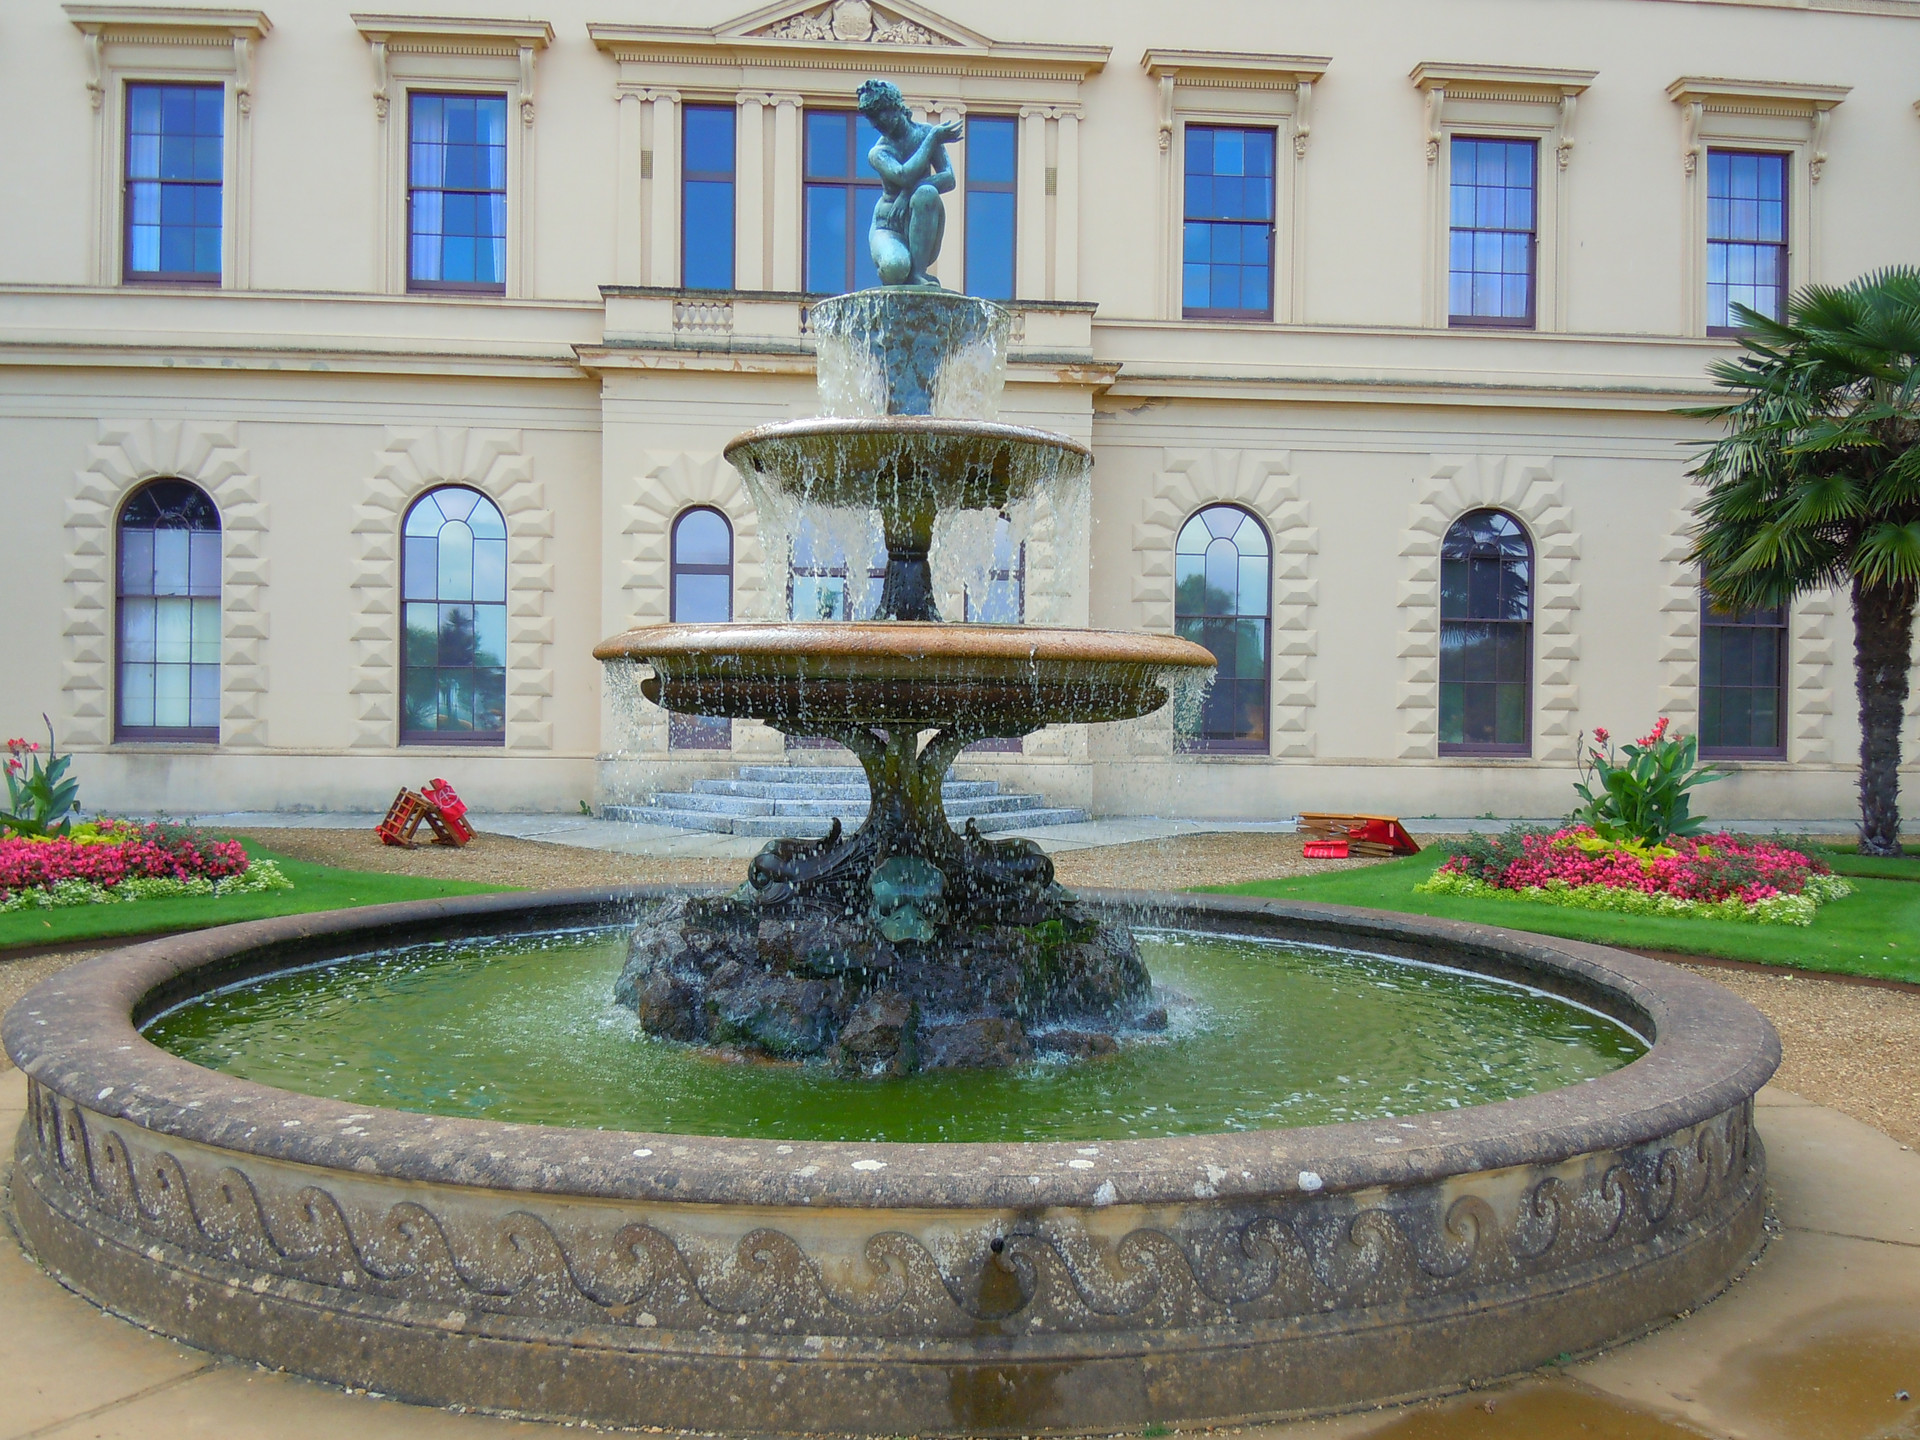 Fountain in the gardens of Osborne House